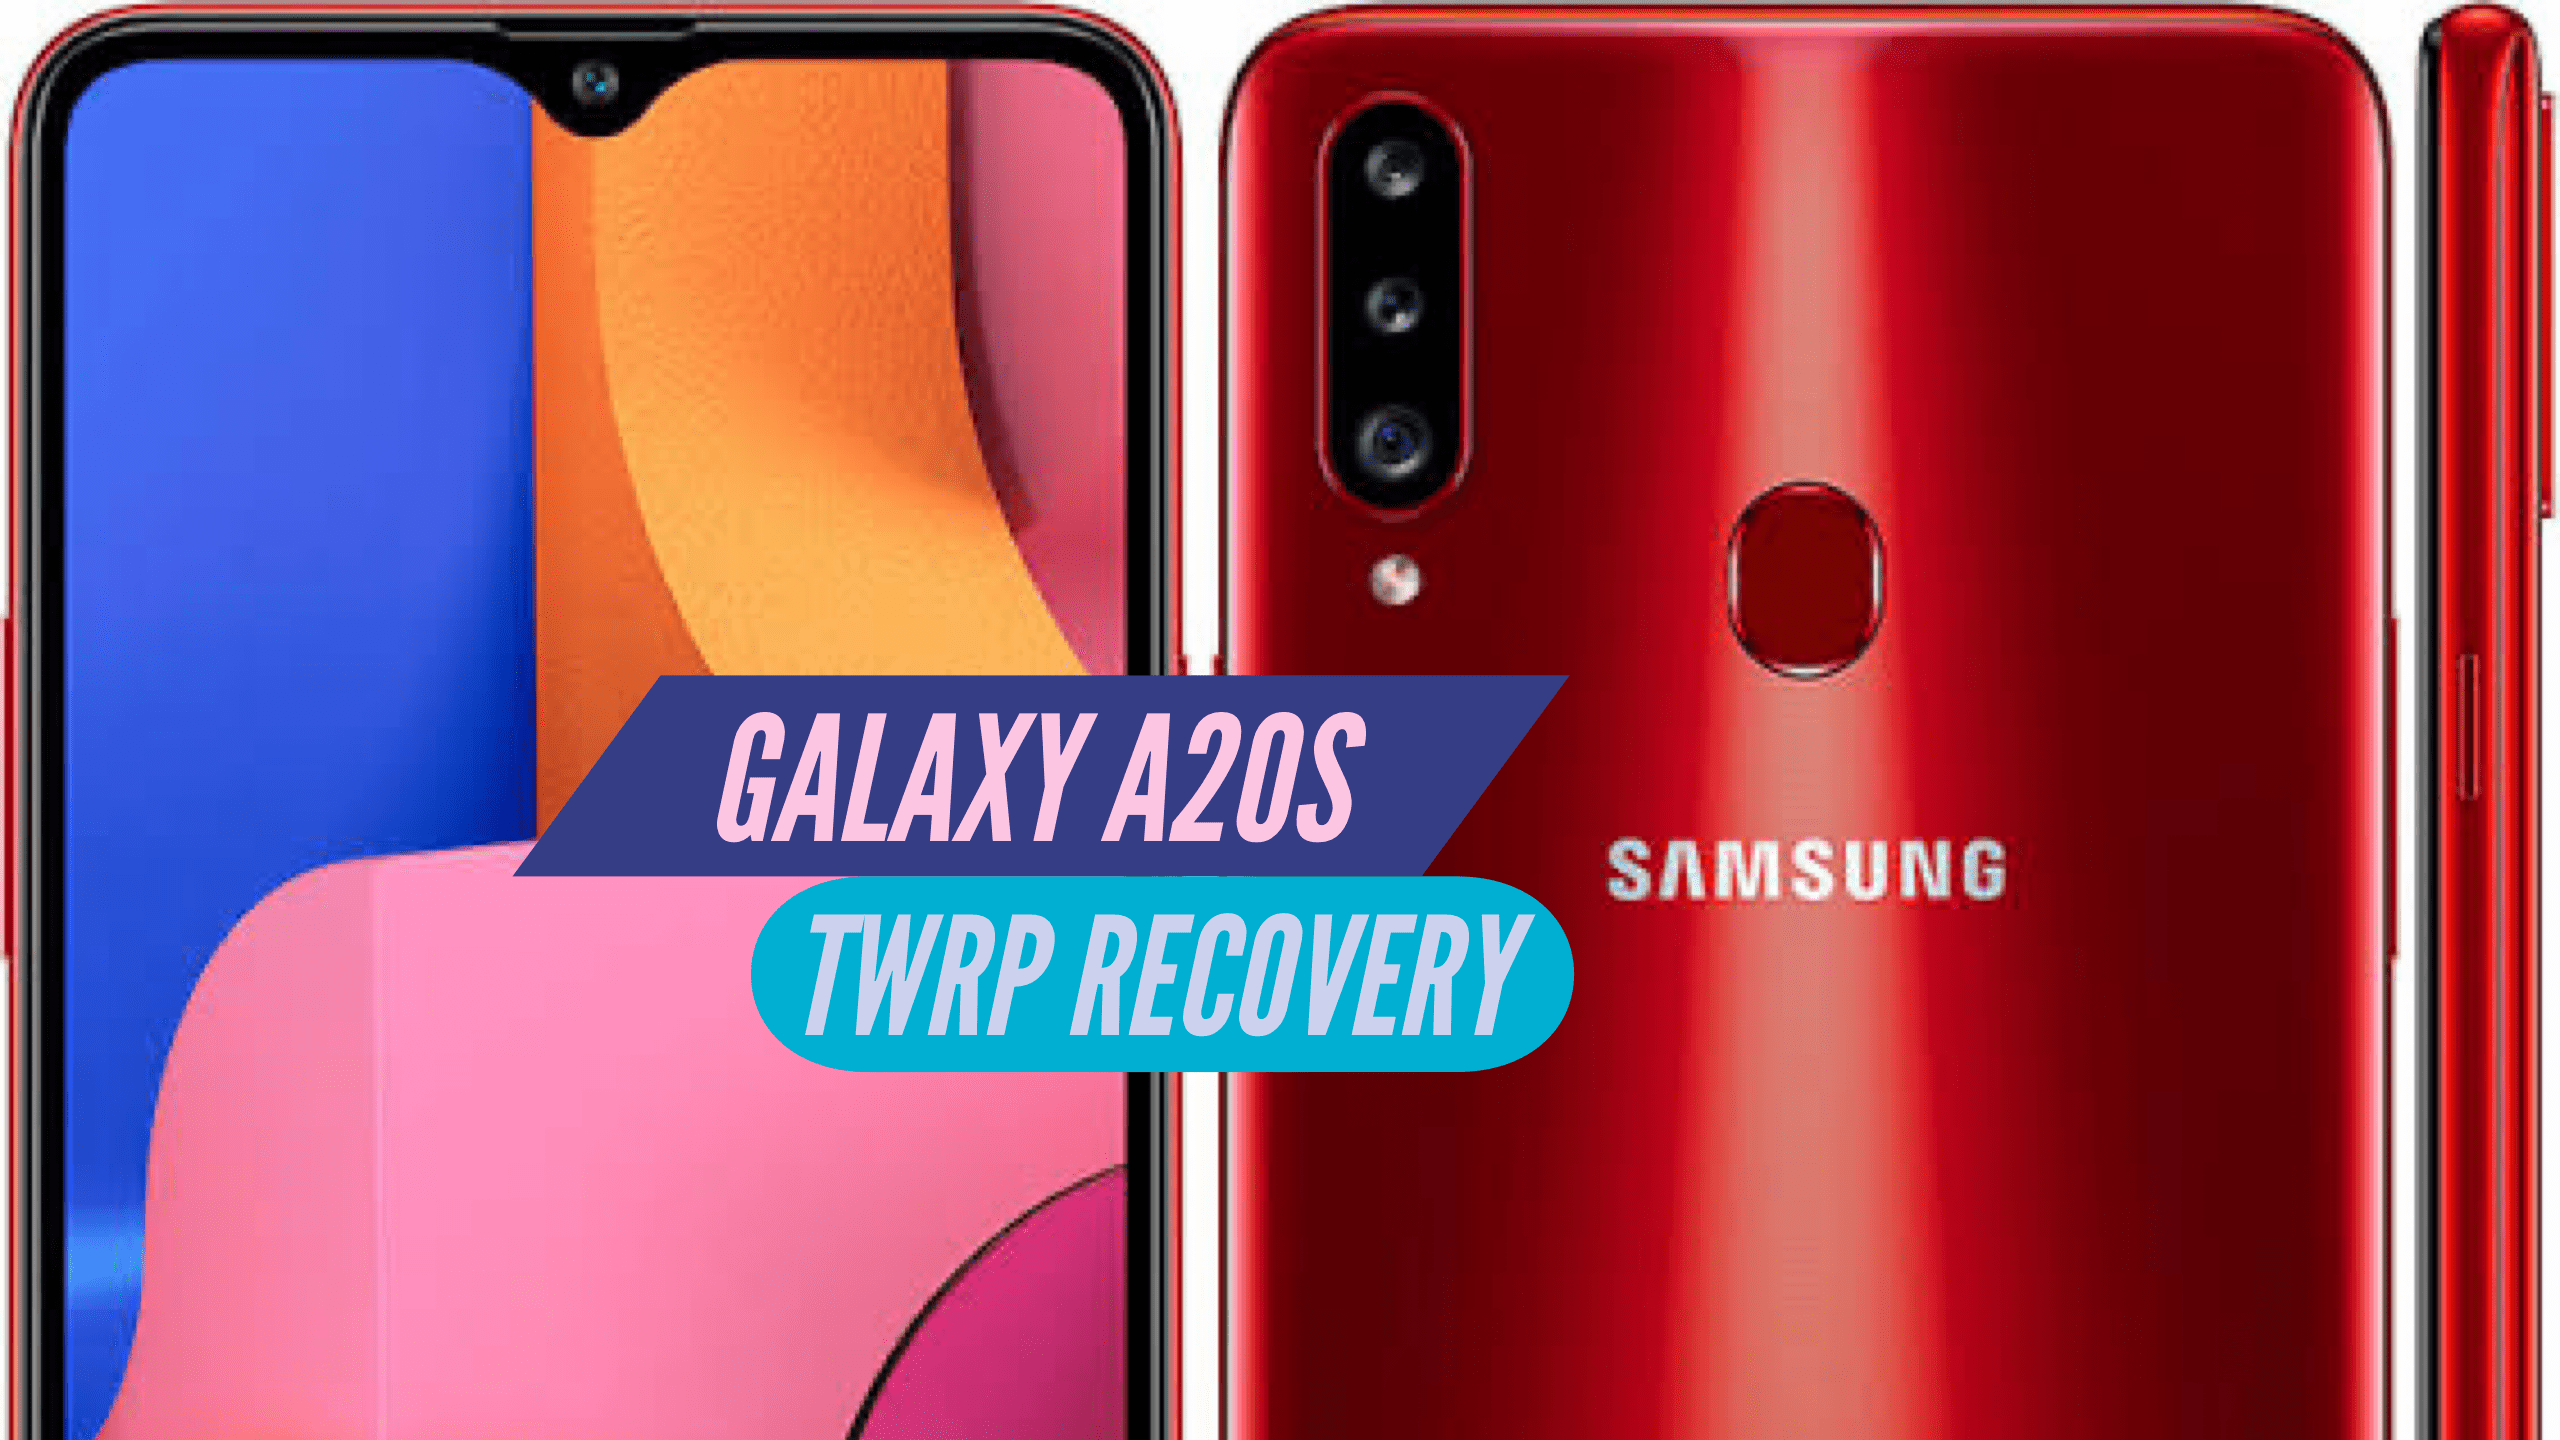 Samsung Galaxy A20s TWRP Recovery